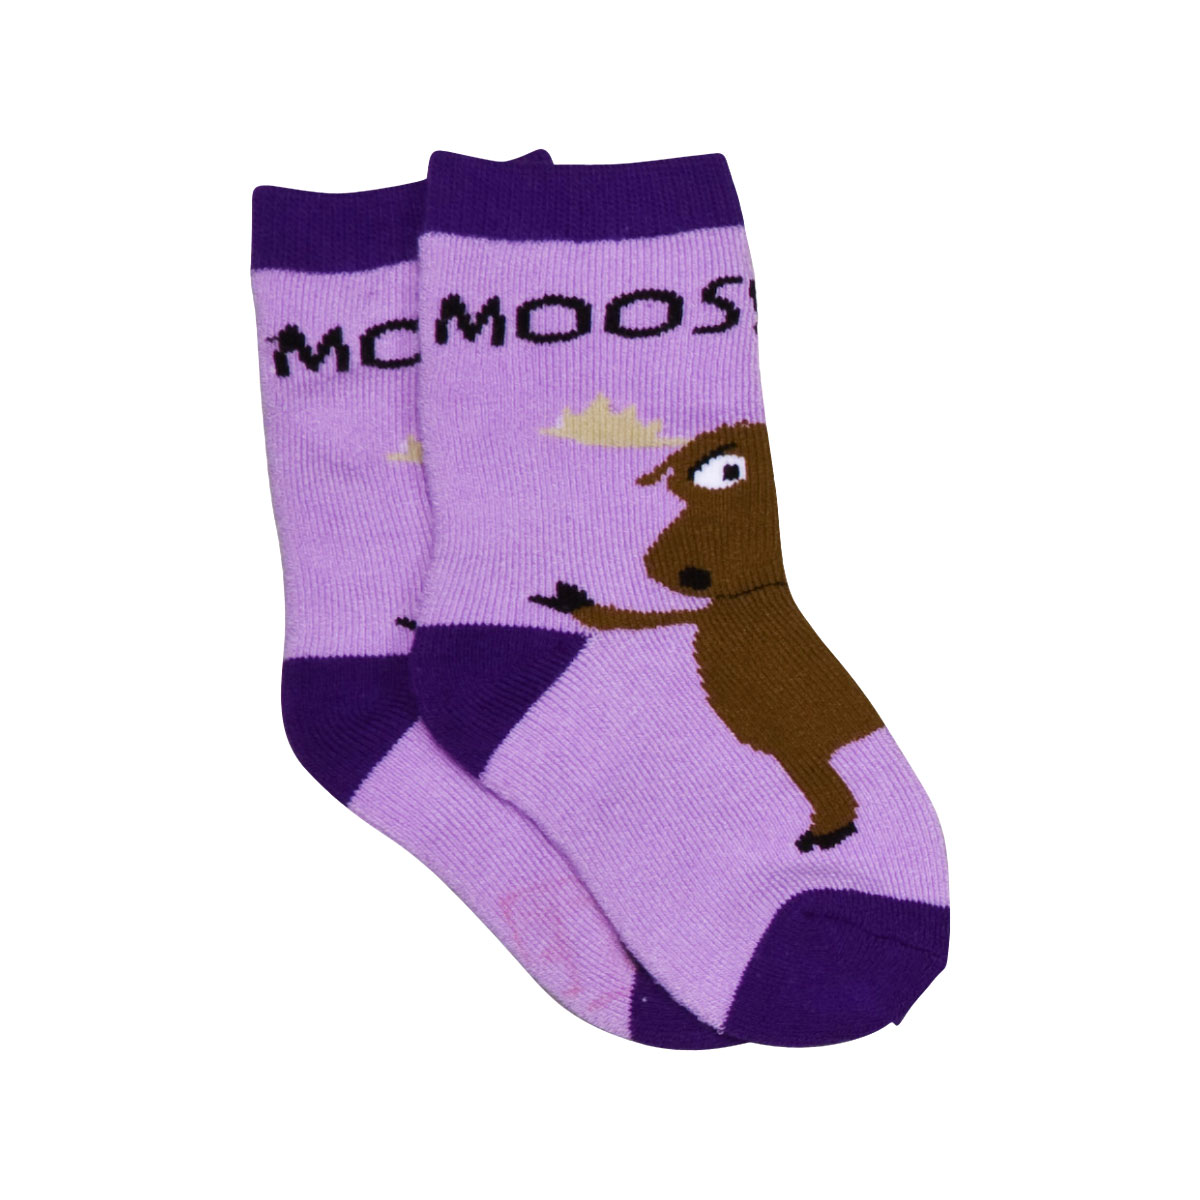 Moose Hug Purple Infant Socks 6-12